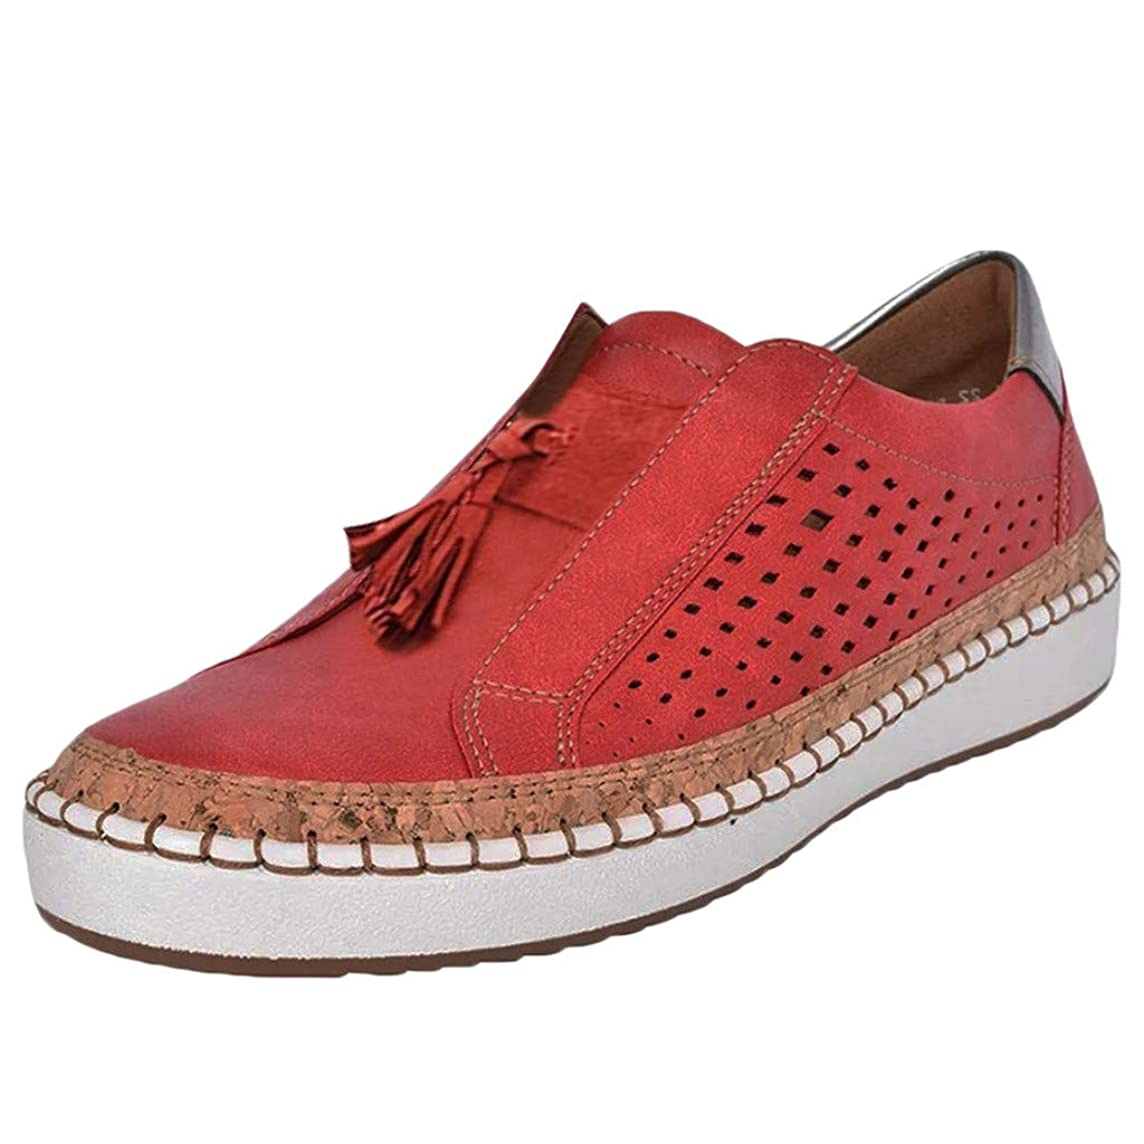 New in Haalife??Women Casual Walking Shoes Casual Hollow Out Slip-On Sneakers Soft Leather Loafers Shoes